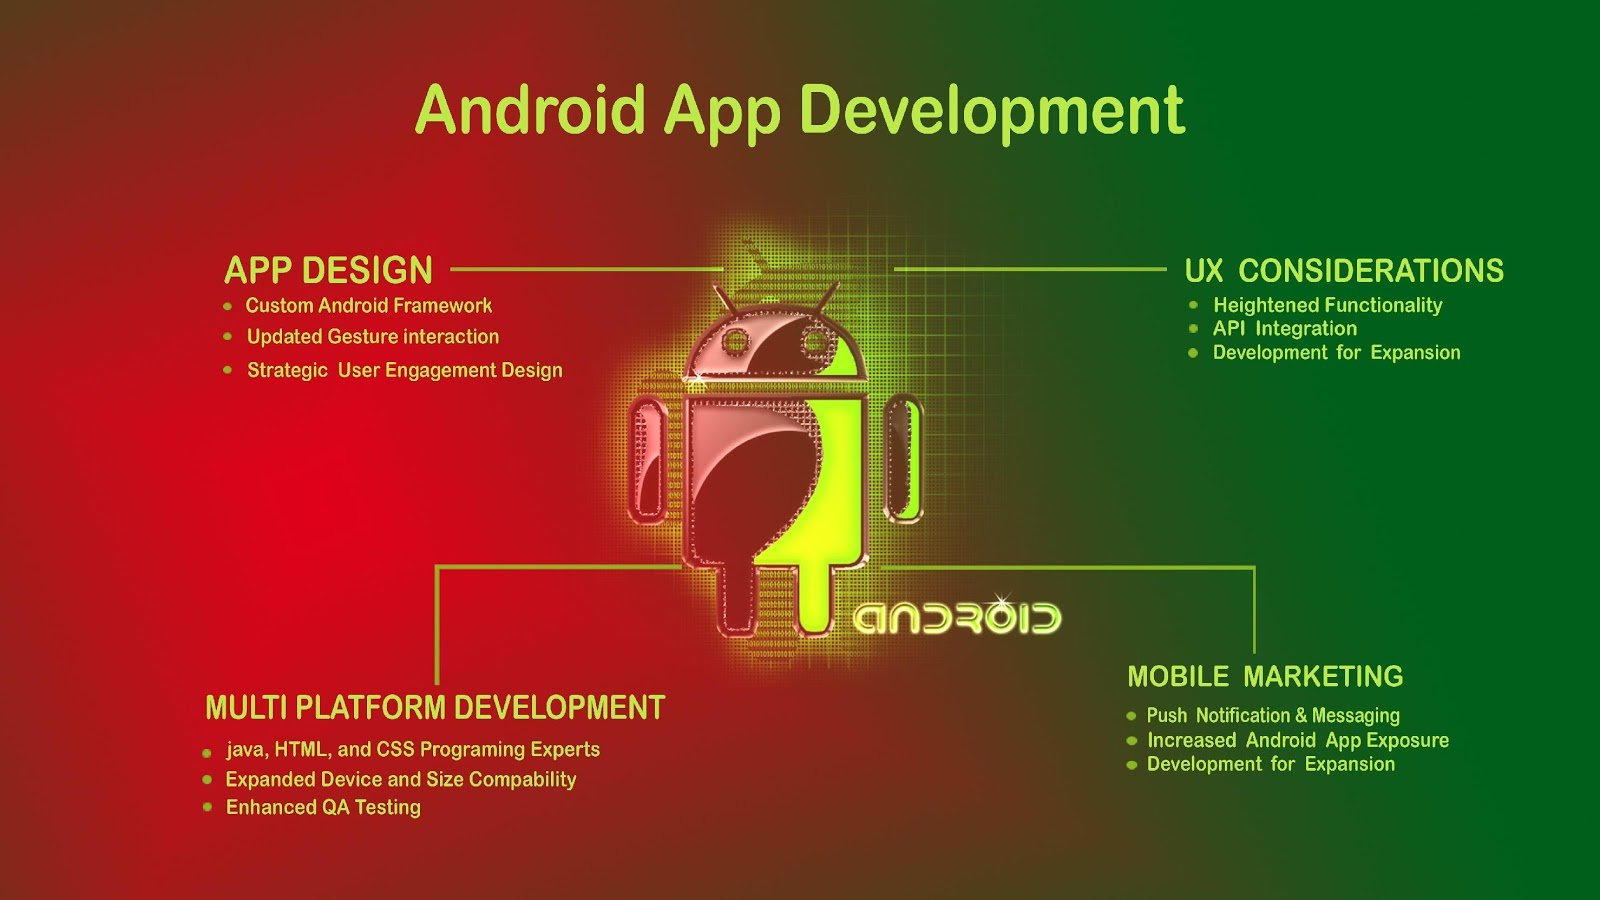 How to Build an Interactive Android App?